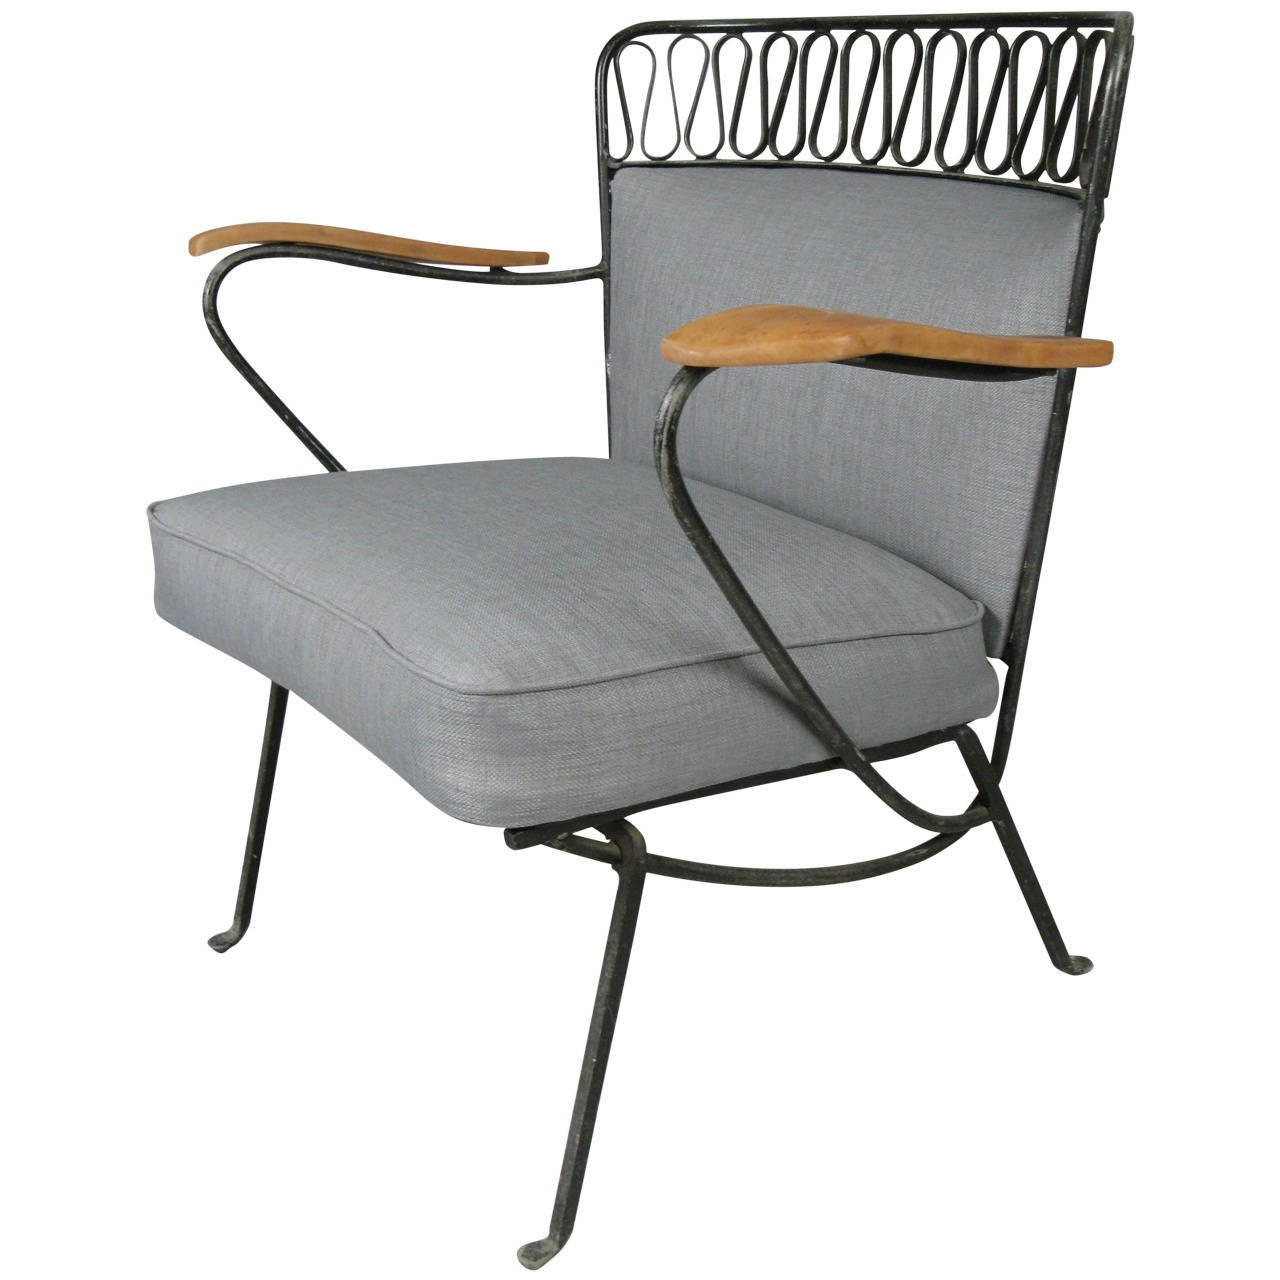 Rare Iron Lounge Chair by Maurizio Tempestini for Salterini at 1stdibs